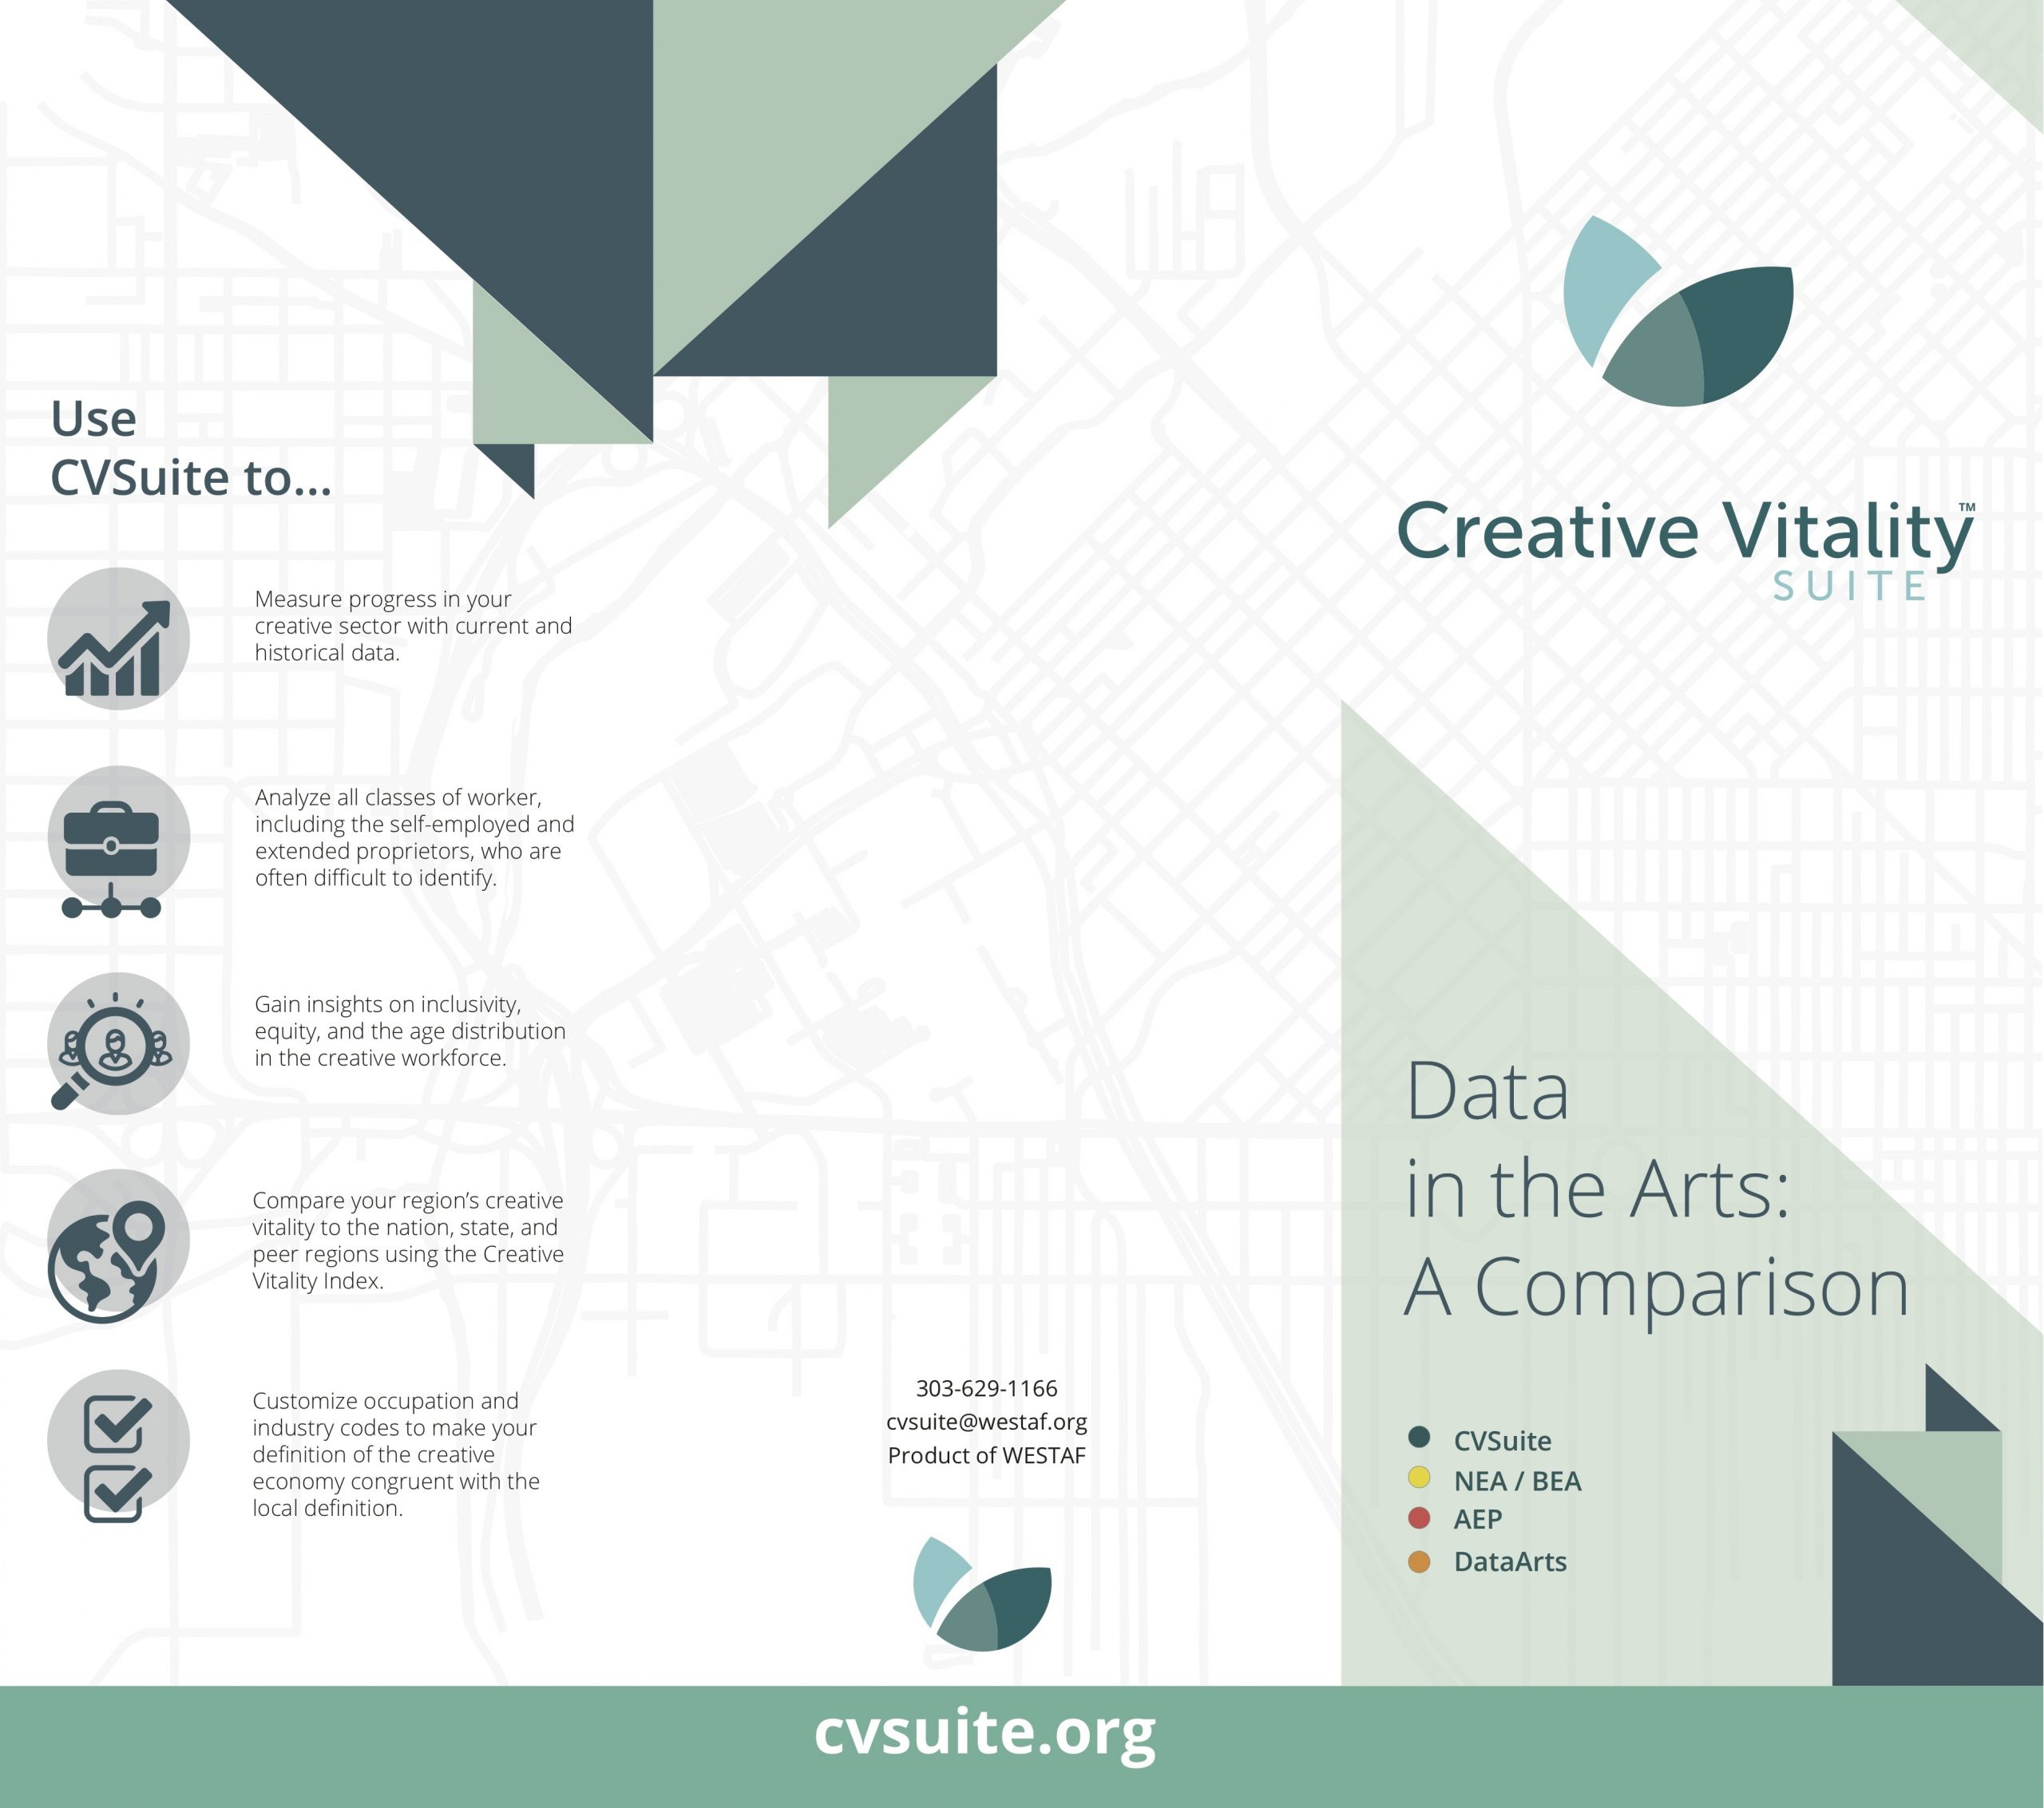 Cover of the data comparison brochure with text that reads Use CVSuite to measure proges, analyze all classes of workers, gain insights on inclusivity, compare region's vitality and customize occupations.